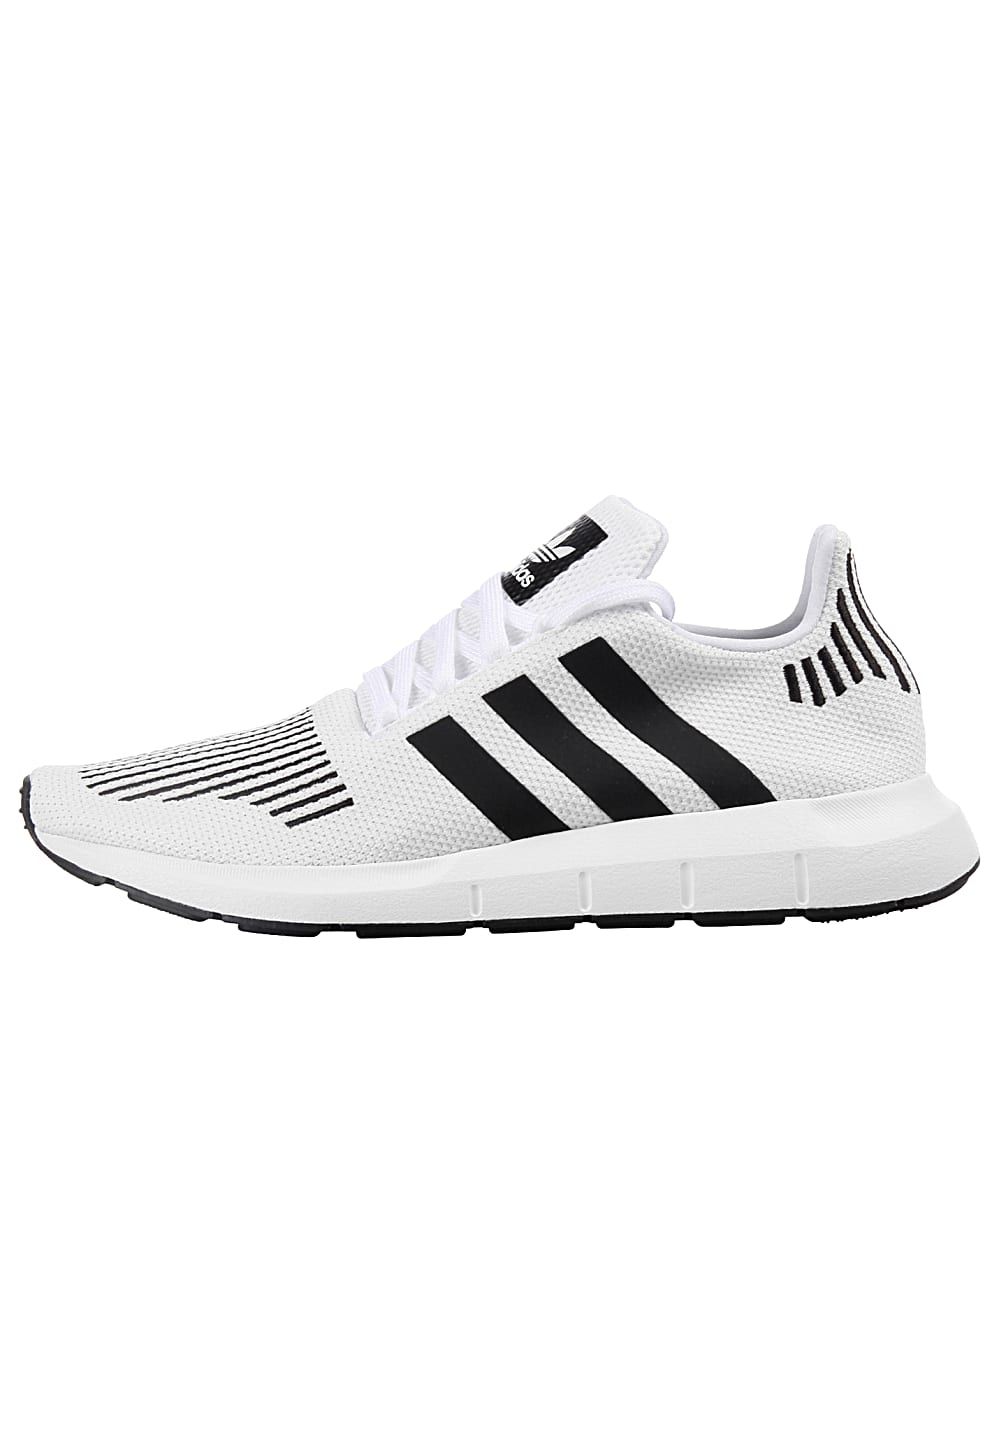 adidas Originals Swift Run - Sneaker für Herren - Weiß ...